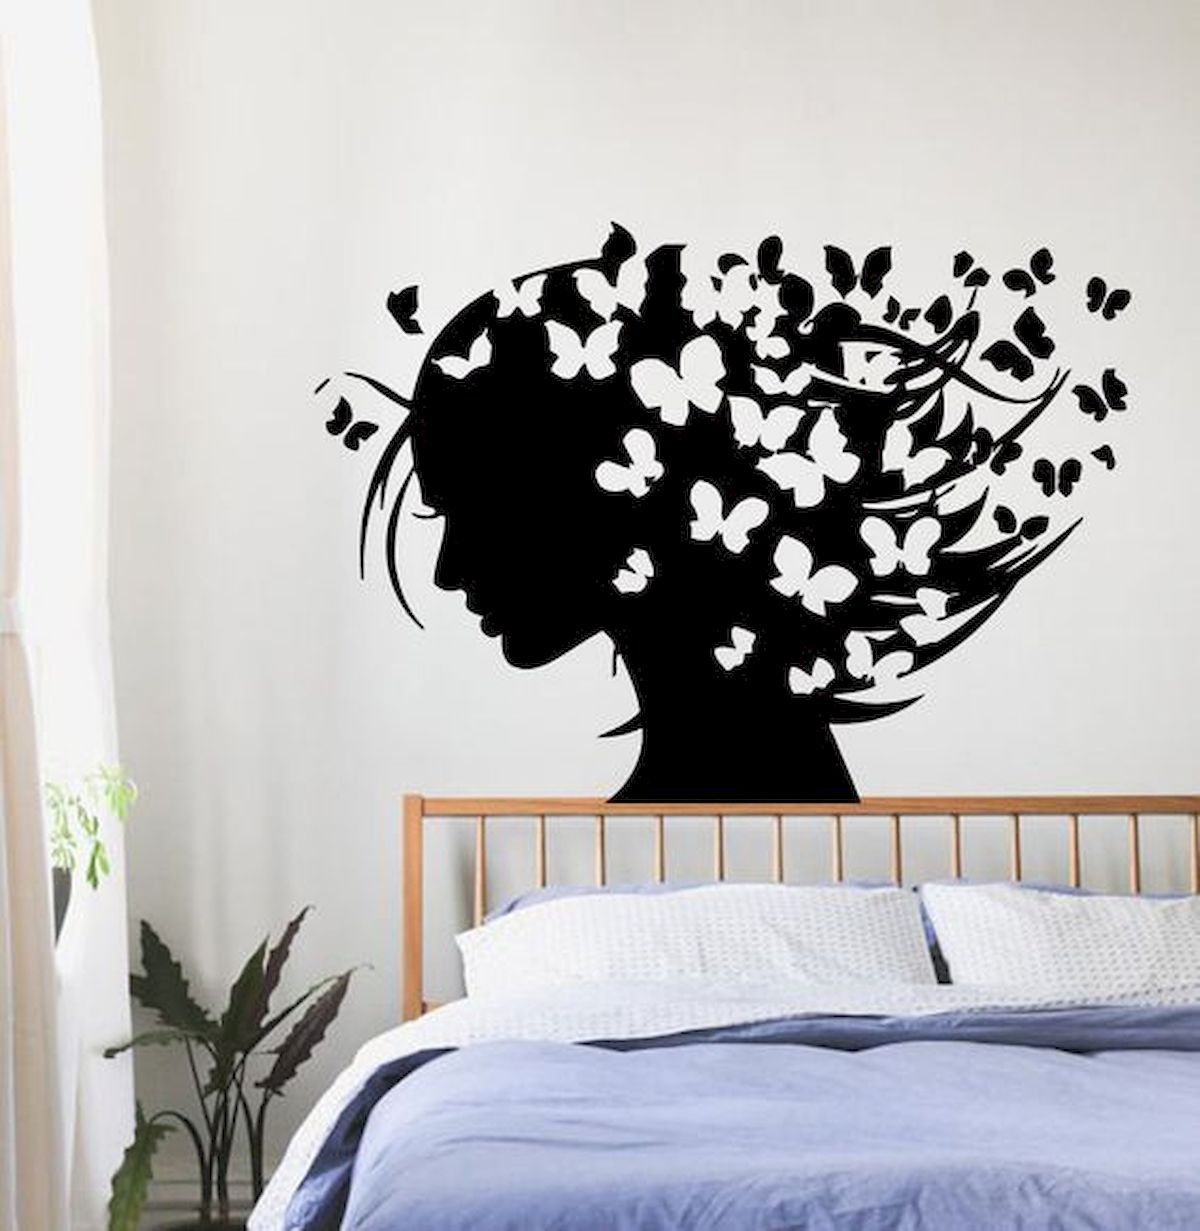 Nice 50 Unique Wall Art Ideas So Artsy Source Https Artmyideas Com 2018 12 31 50 Unique Wall A Wall Art Decor Bedroom Bedroom Wall Paint Wall Paint Designs